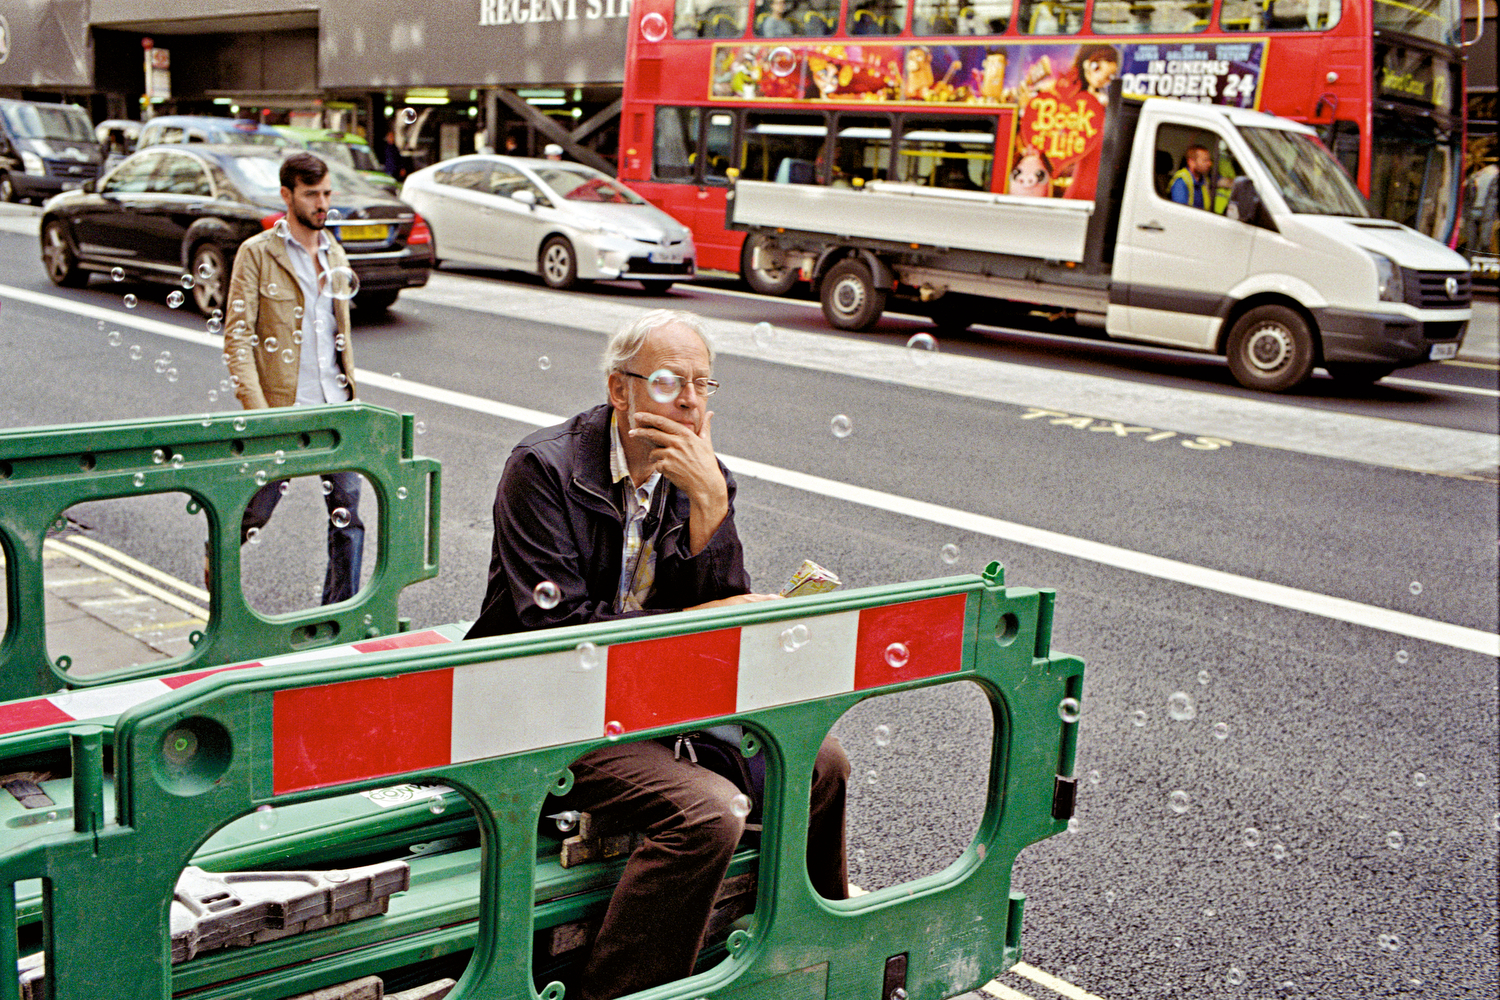 MATT STUART_PHOTOGRAPHER_STREET_COLOUR_LONDON_11.jpg